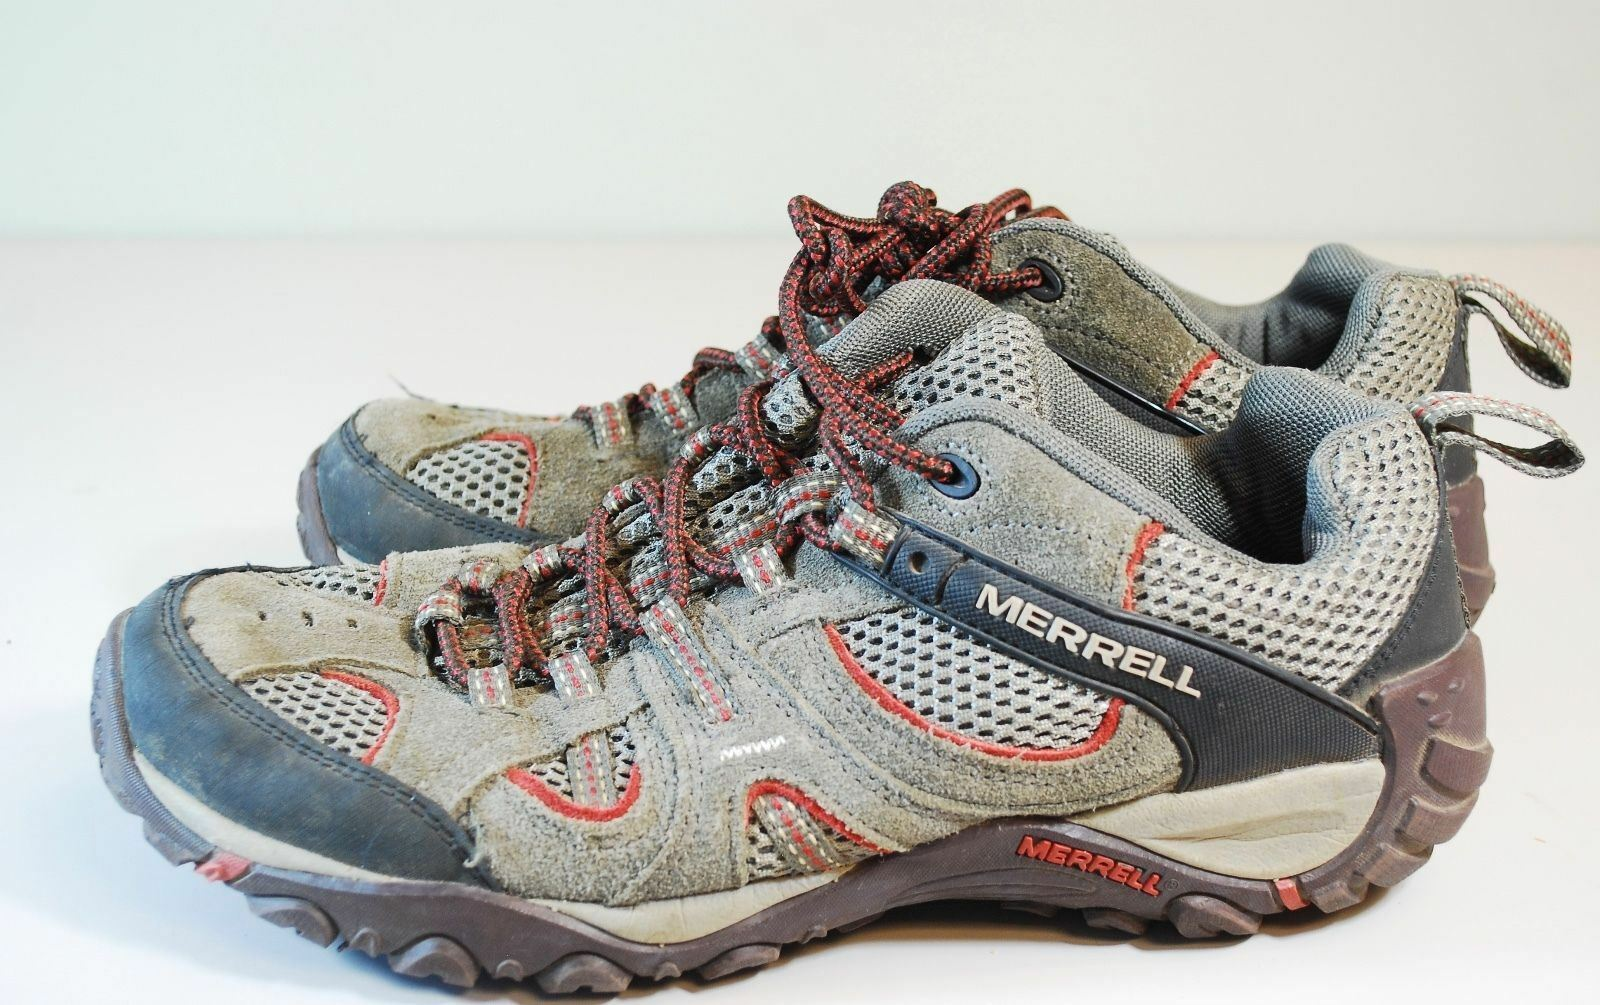 MERRELL SUEDE HIKING Schuhe - MEN'S SIZE 8 - SUEDE MERRELL LEATHER LACE-UP LOW TOP SNEAKERS aac028